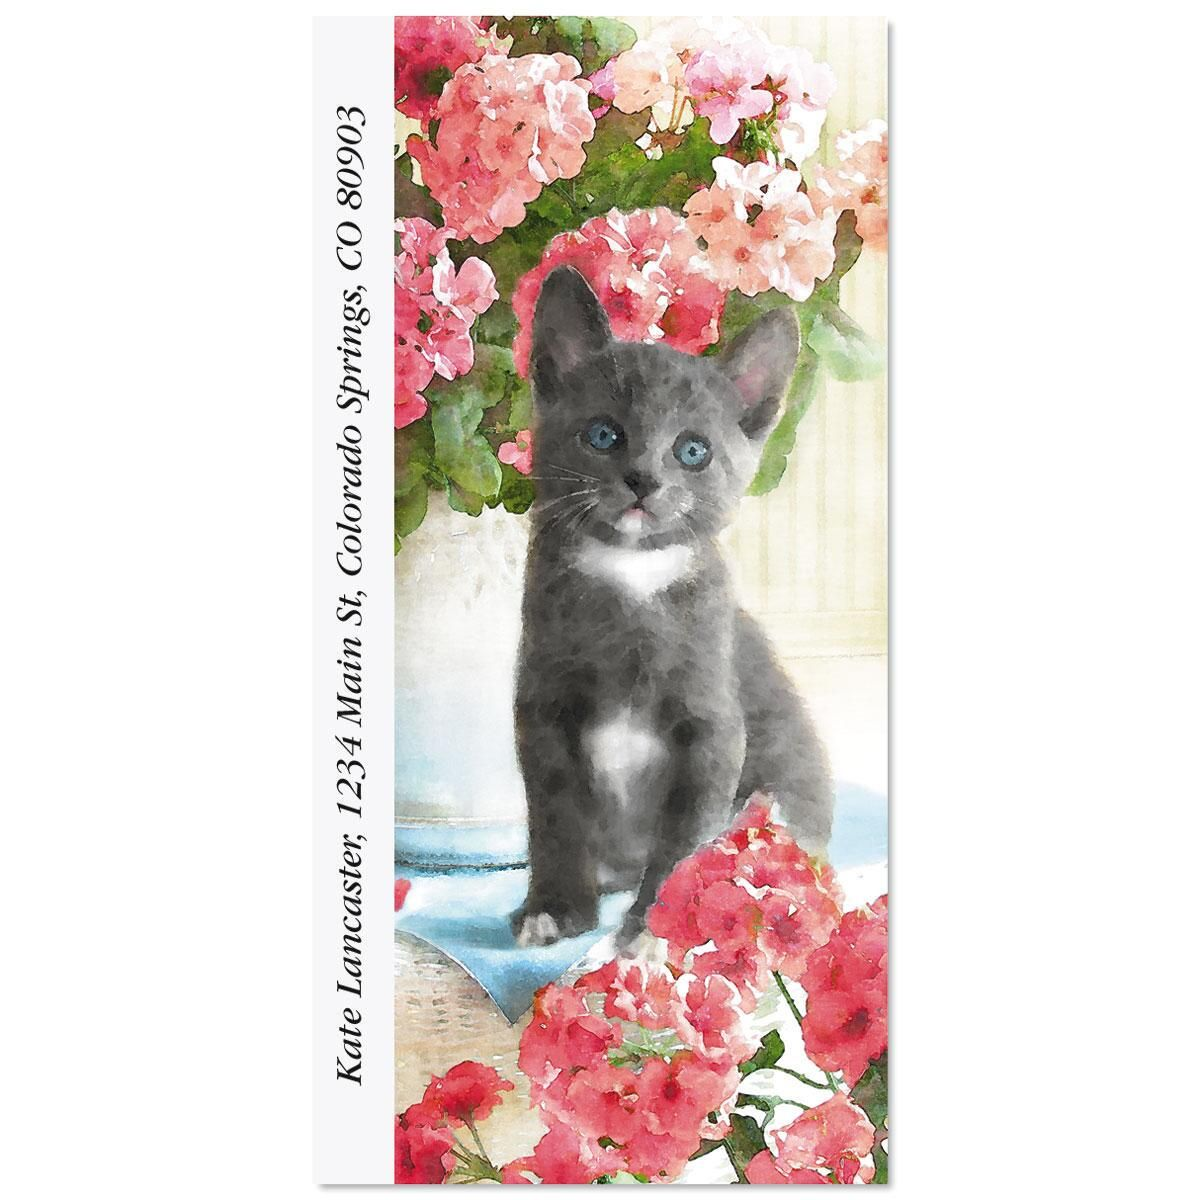 Purrfectly Feline Oversized Return Address Labels